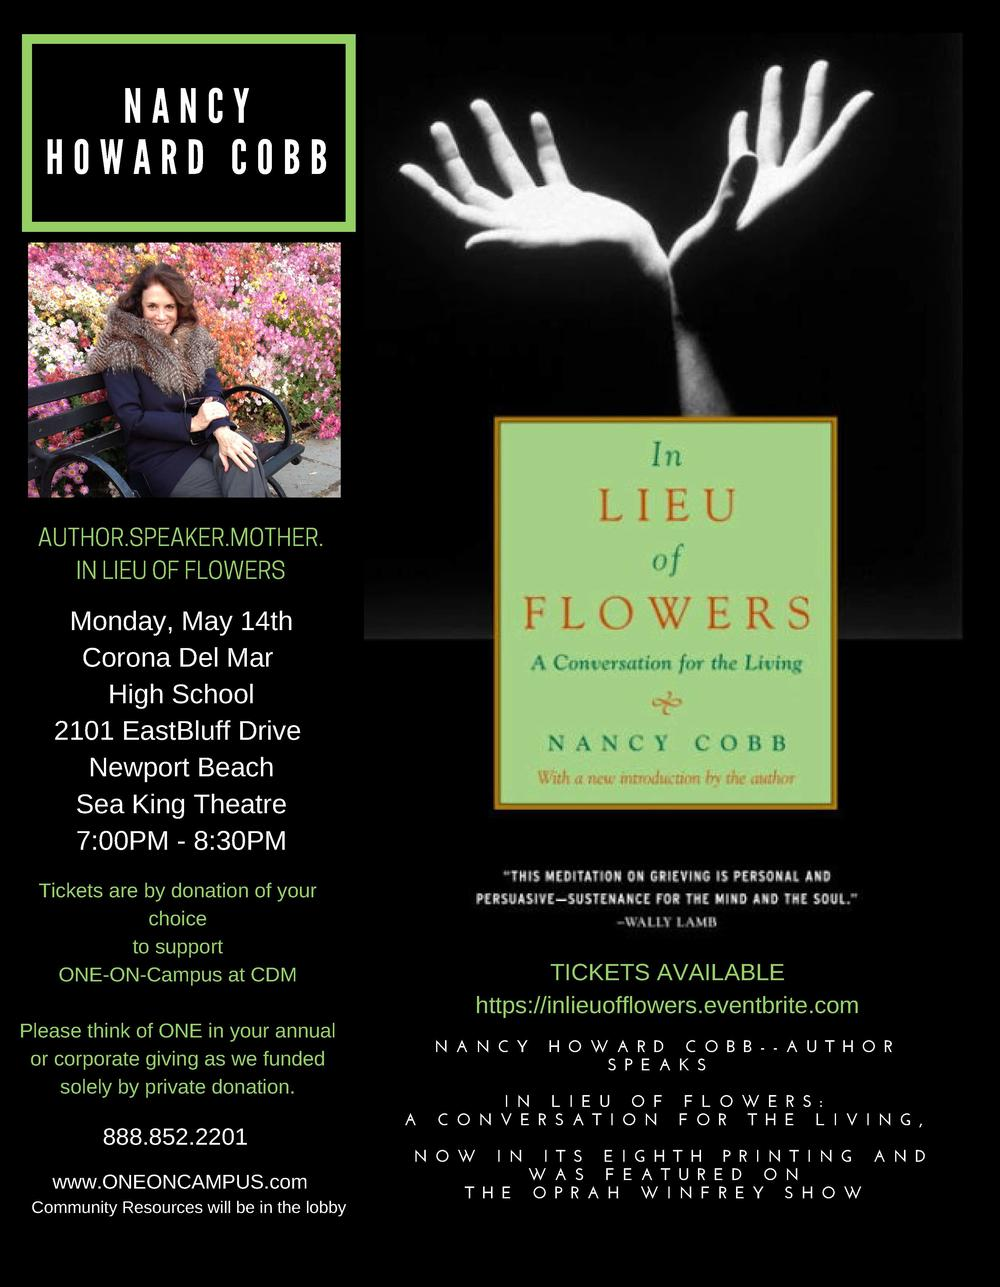 In Lieu of Flowers flyer